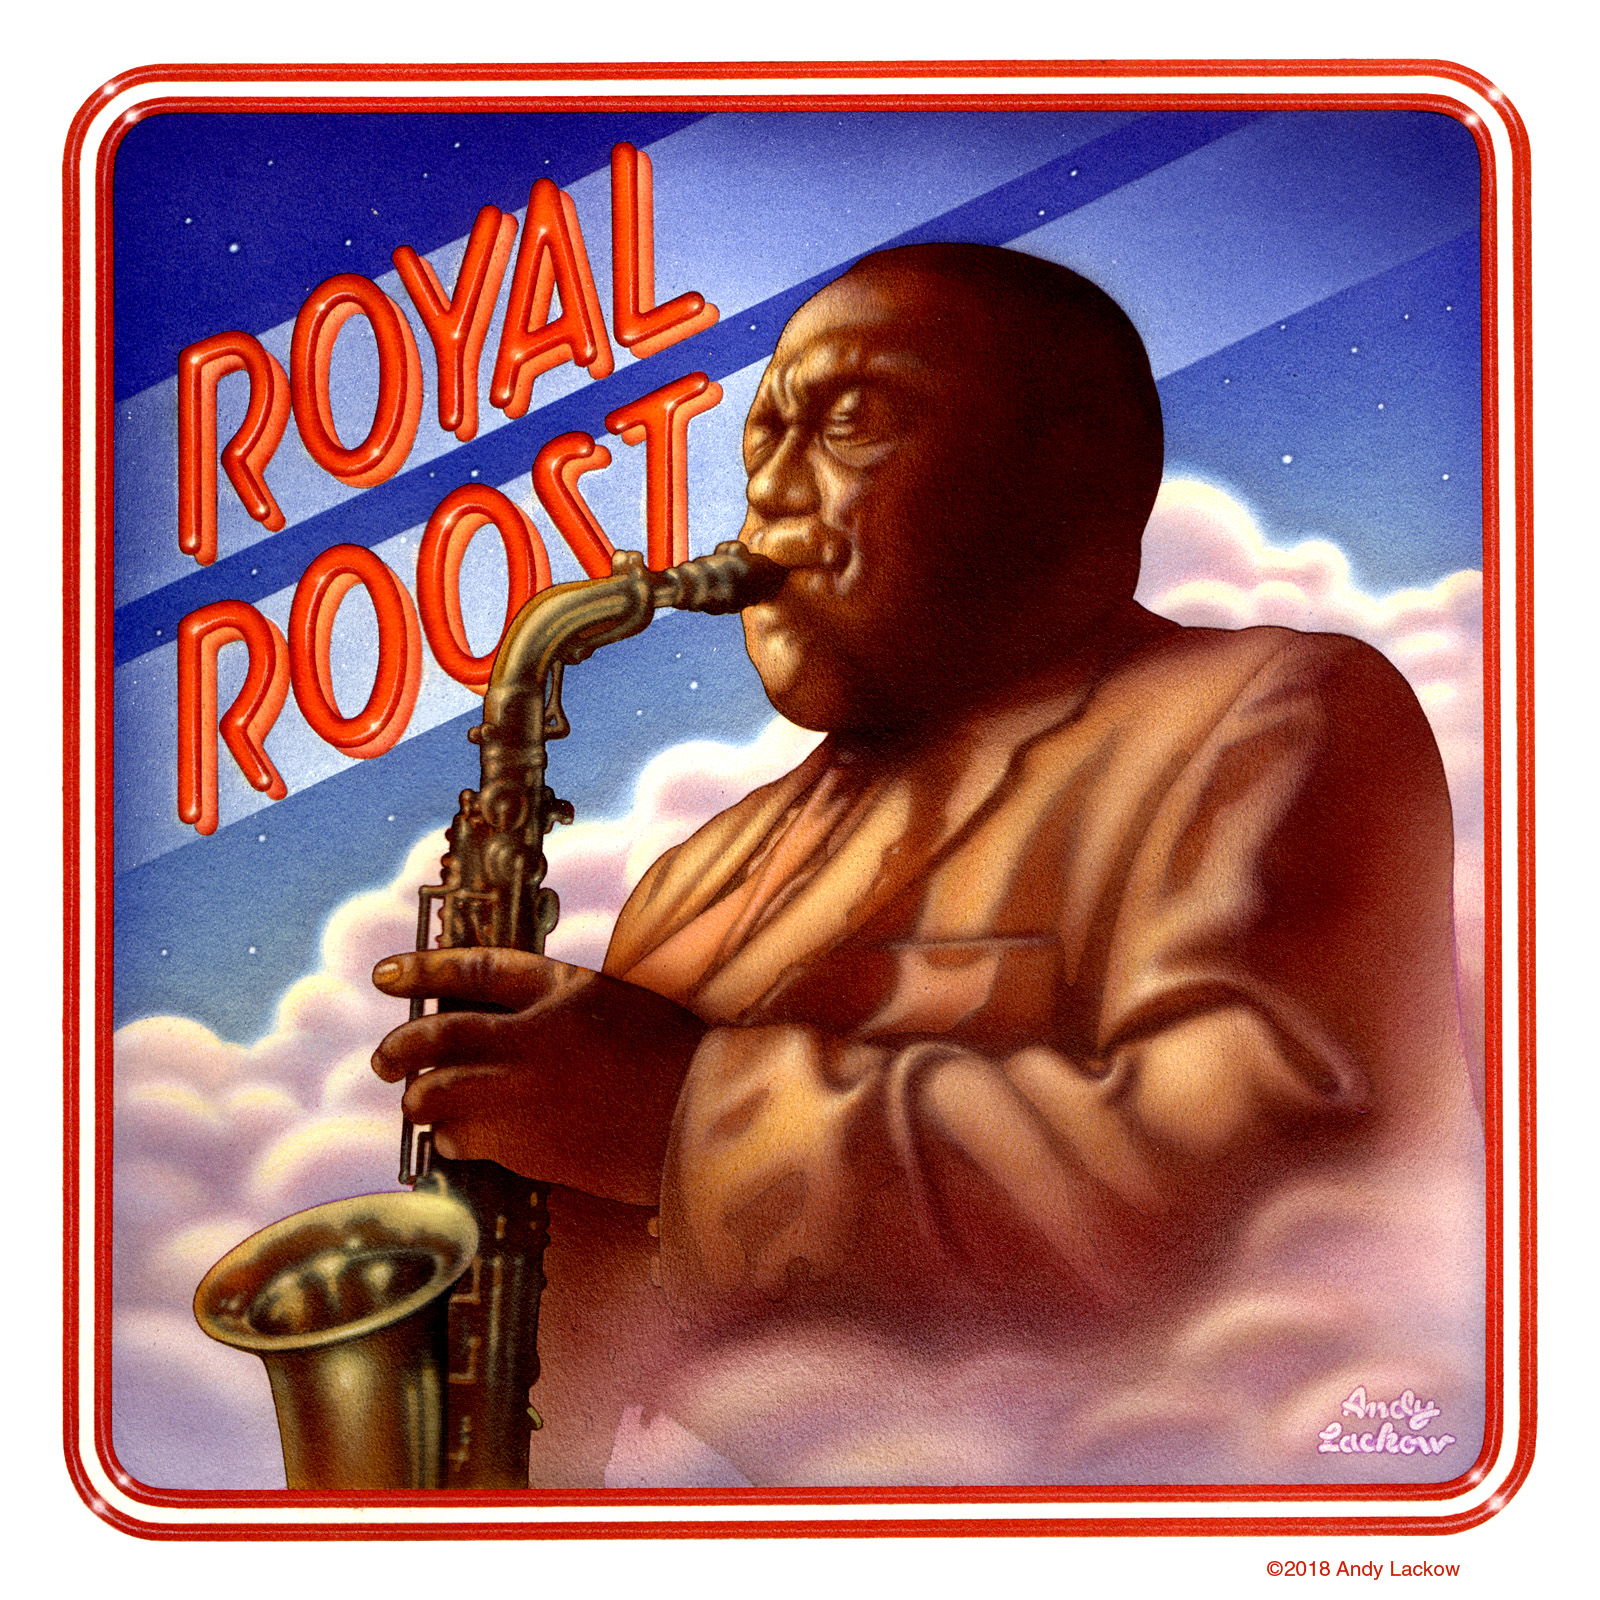 Charlie Parker - Bird at the Royal Roost